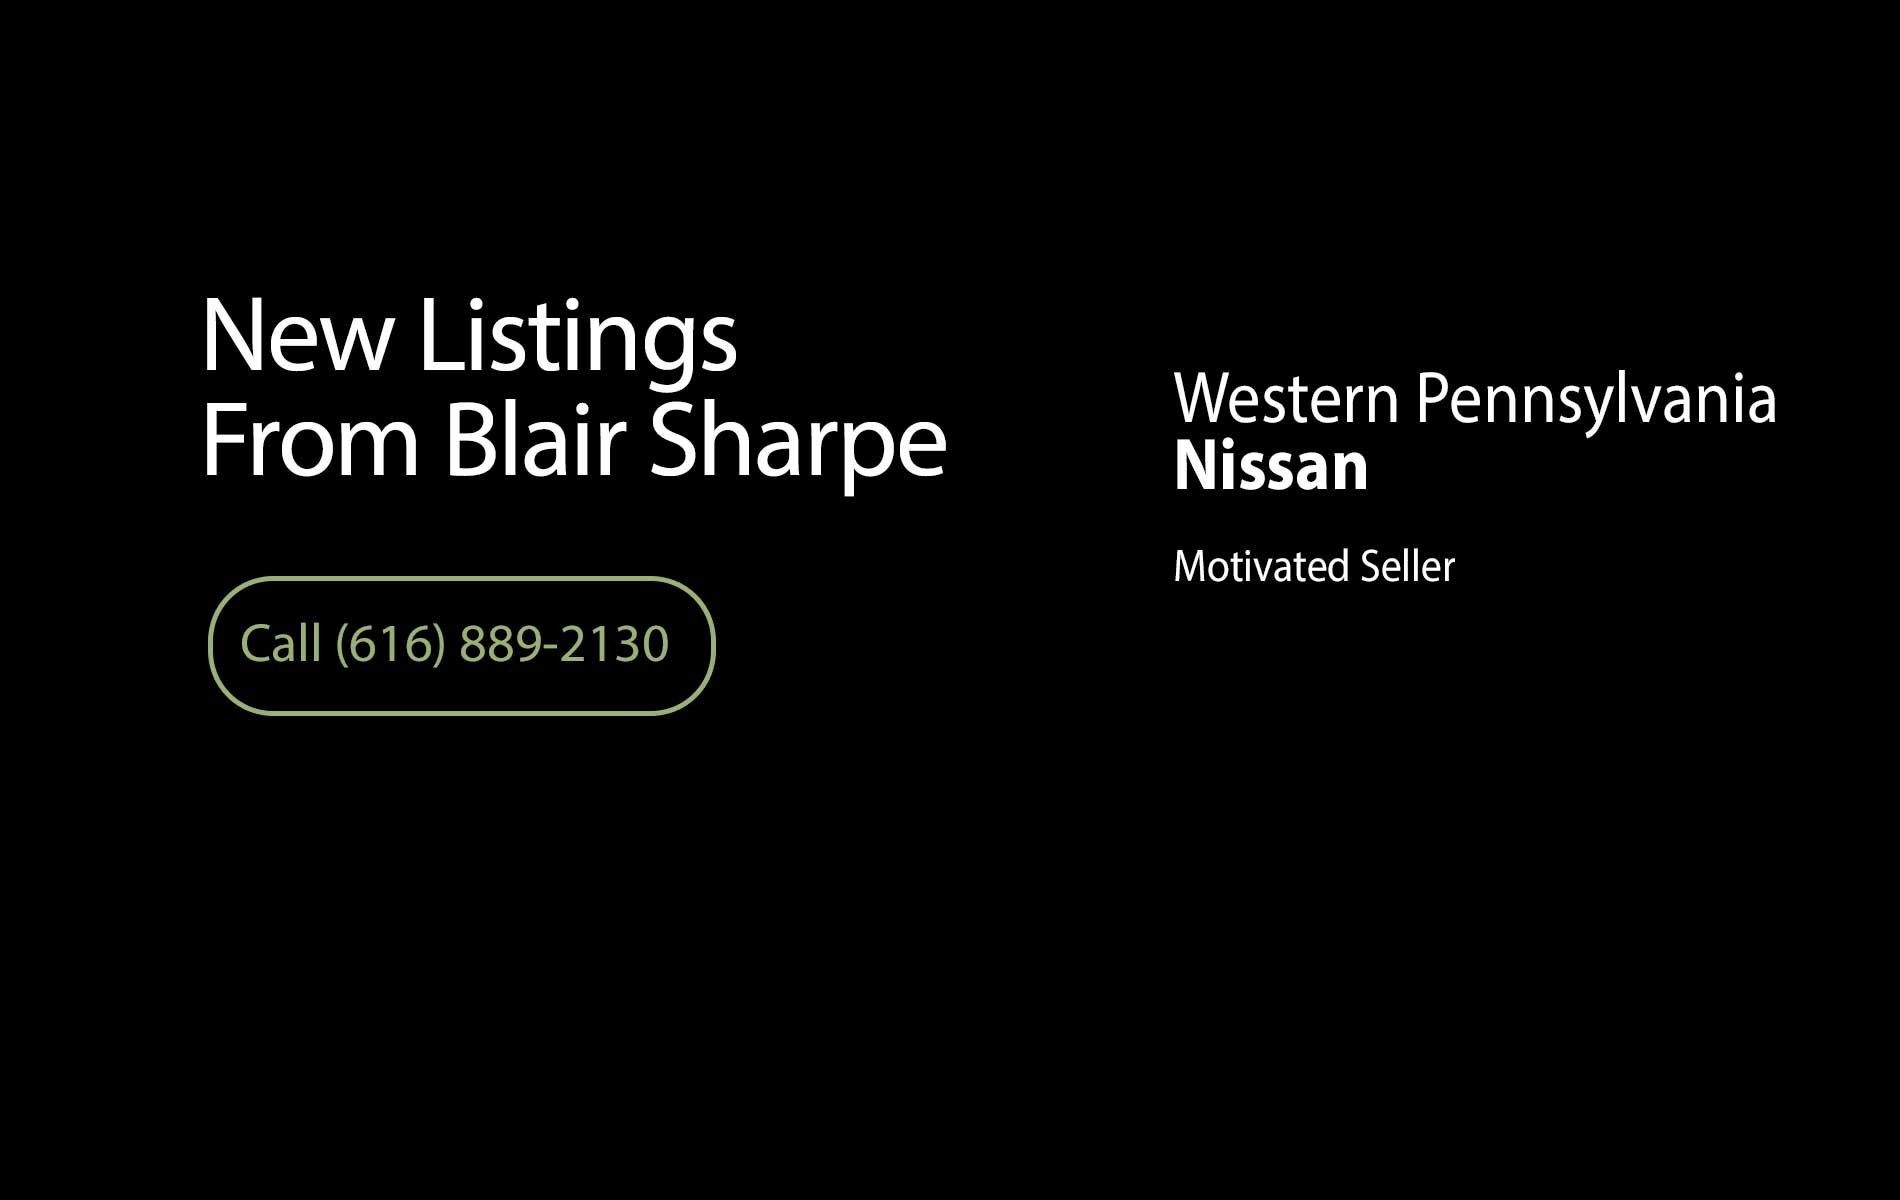 BLAIR-SHARPE-LISTING-7-28-2020-SHOWCASE-1900x1200-rev